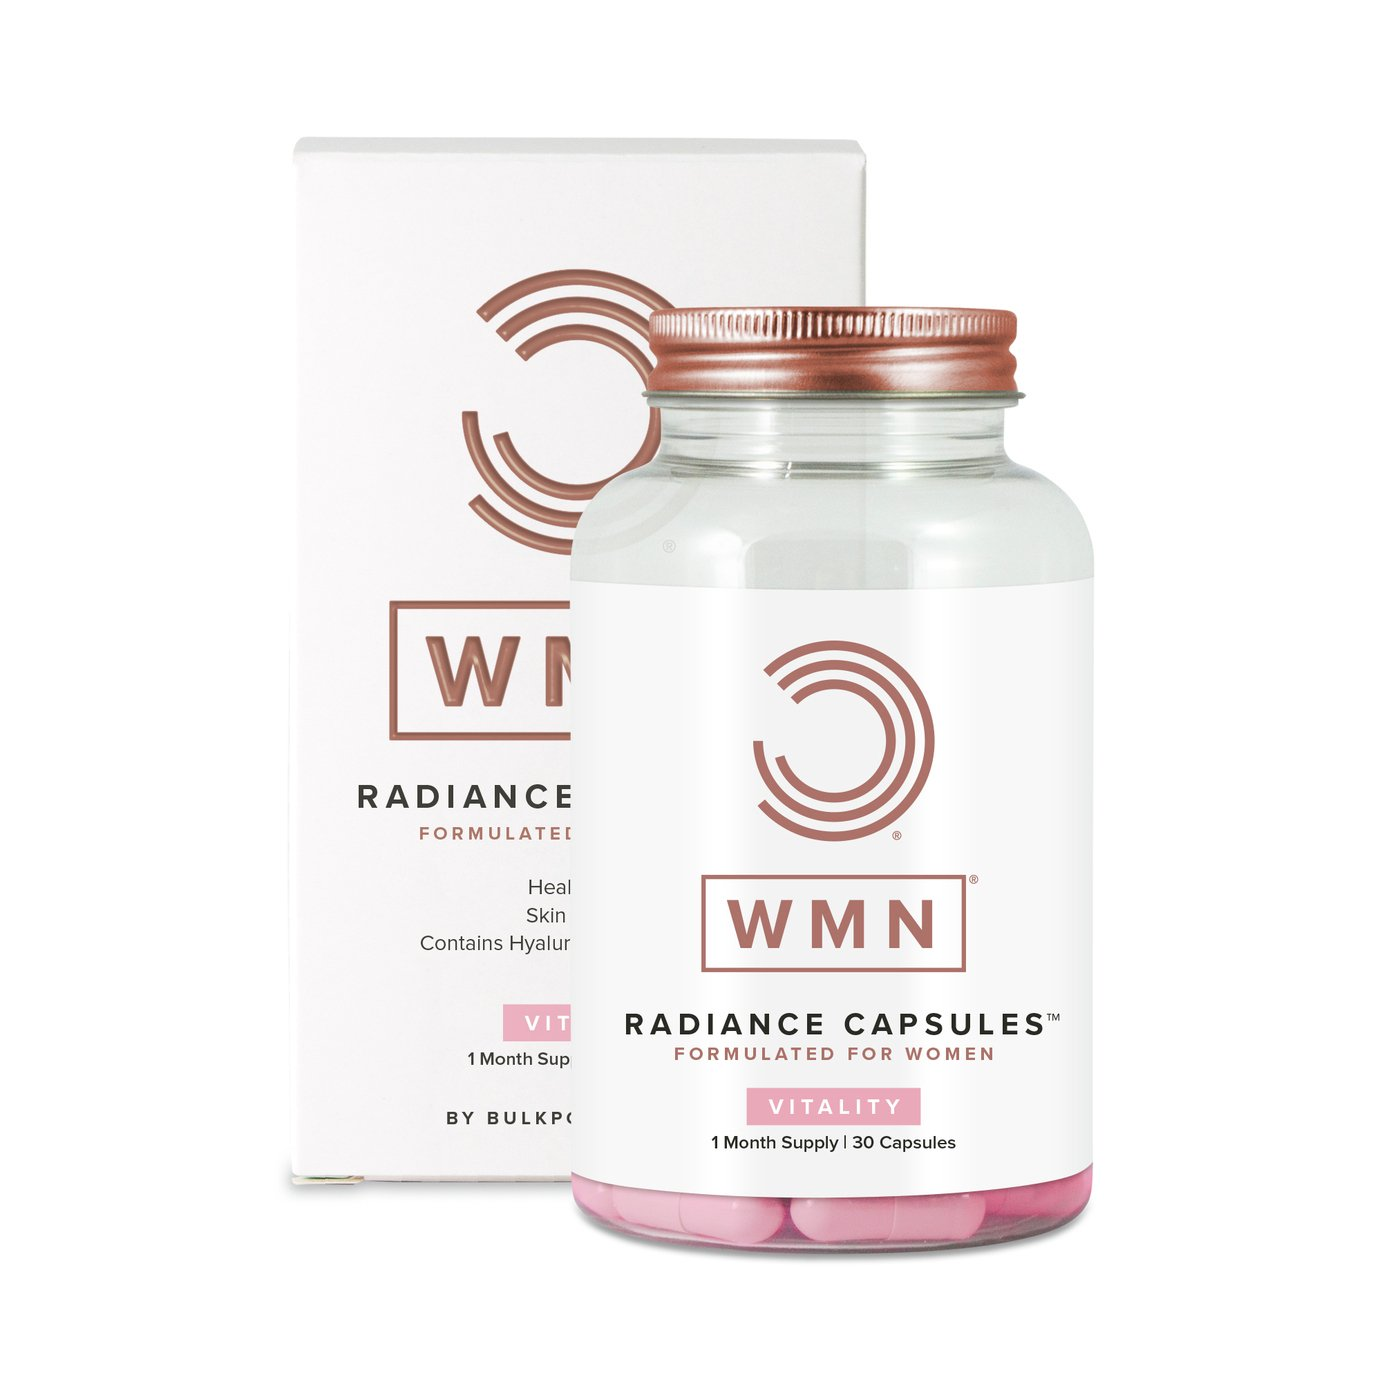 WMN Radiance Capsules Skin Hair and Nails Formula